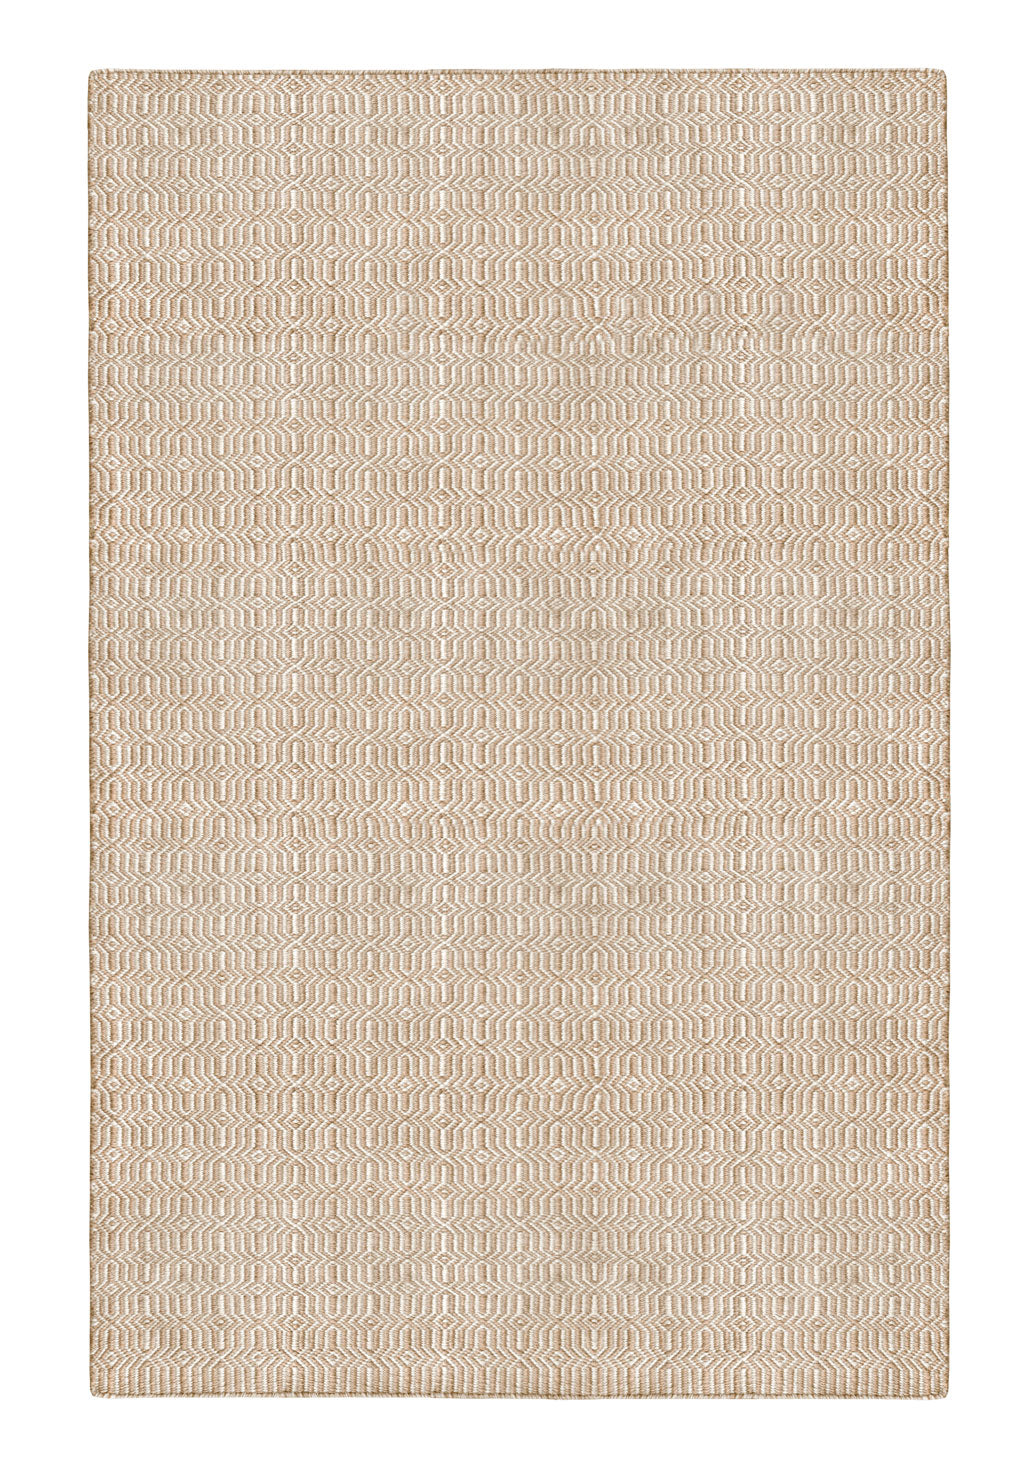 Viva Indoor Outdoor Recycled PET Rug (Beige/Light Cream)